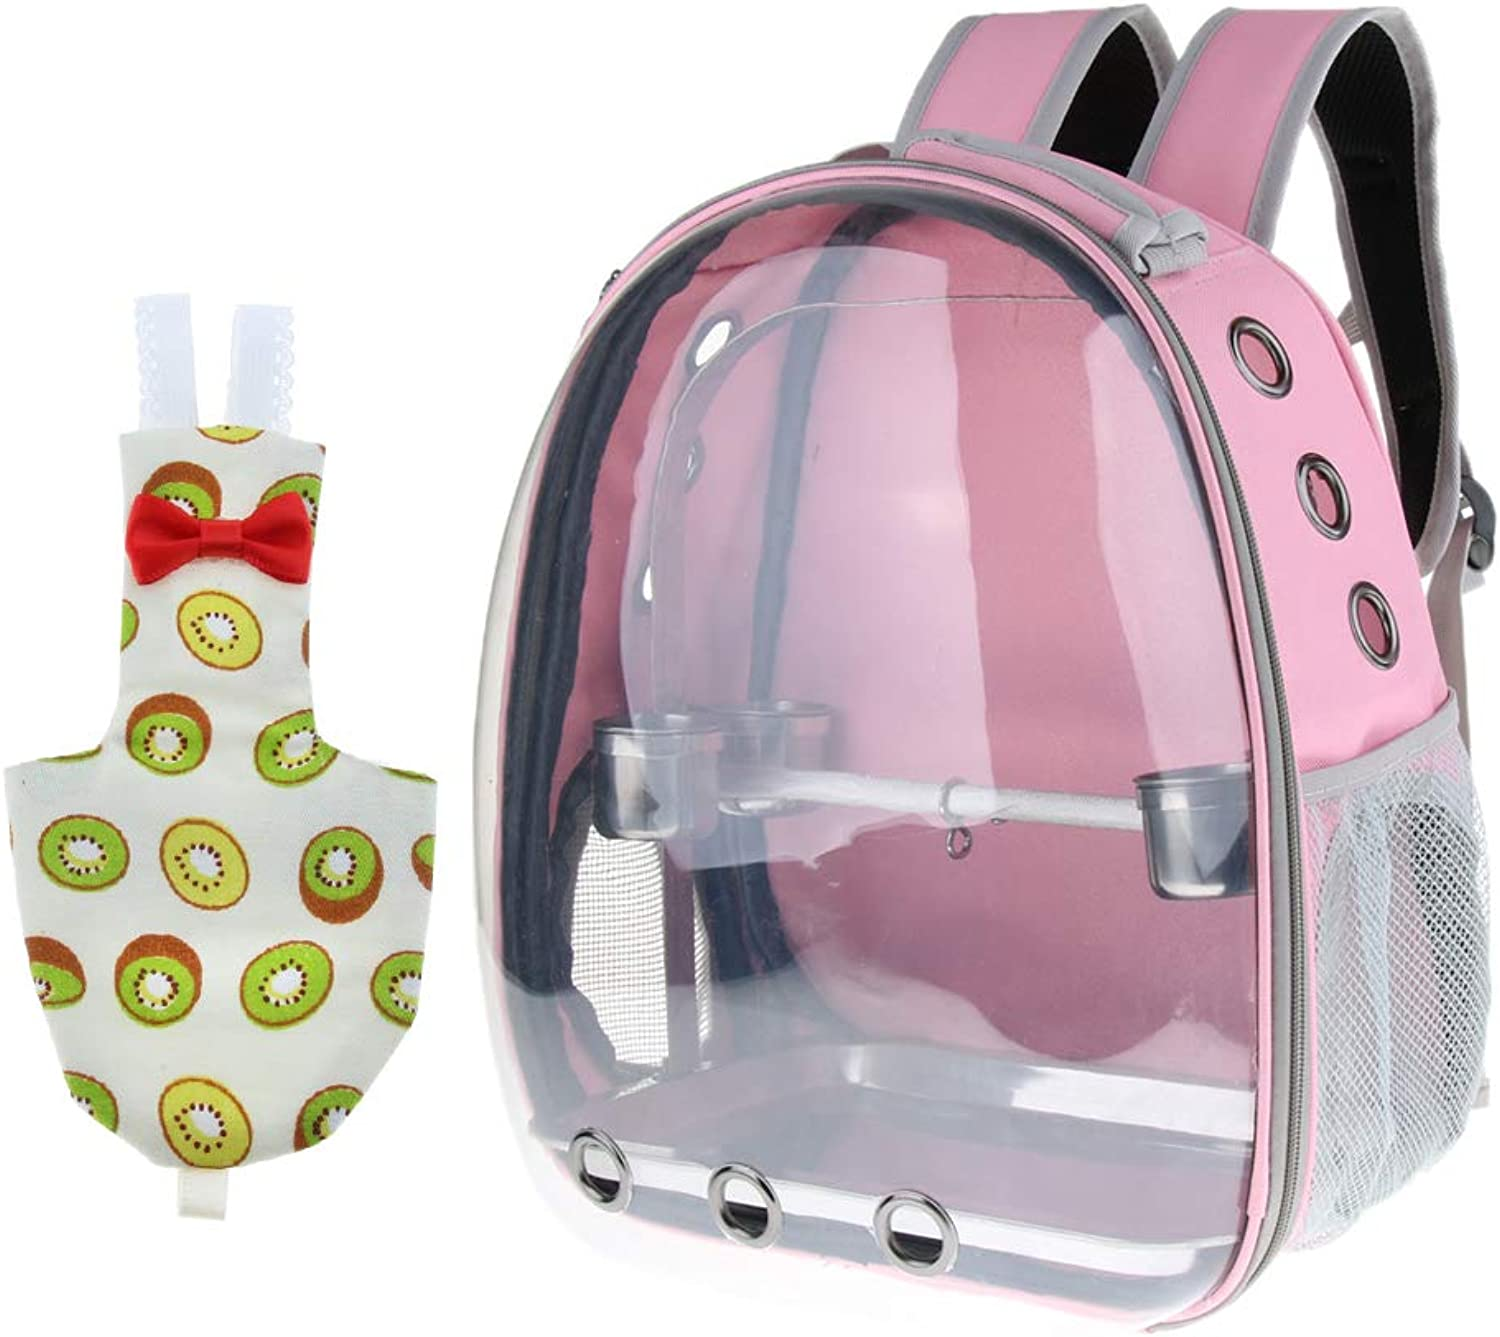 B Blesiya Parred Travel Carried Backpack Space Capsule Pet Bird Outdoor Perch with Feeding Cup and Reusable Bird Diaper Parakeet Cockatiels Chest Cover (Pink)